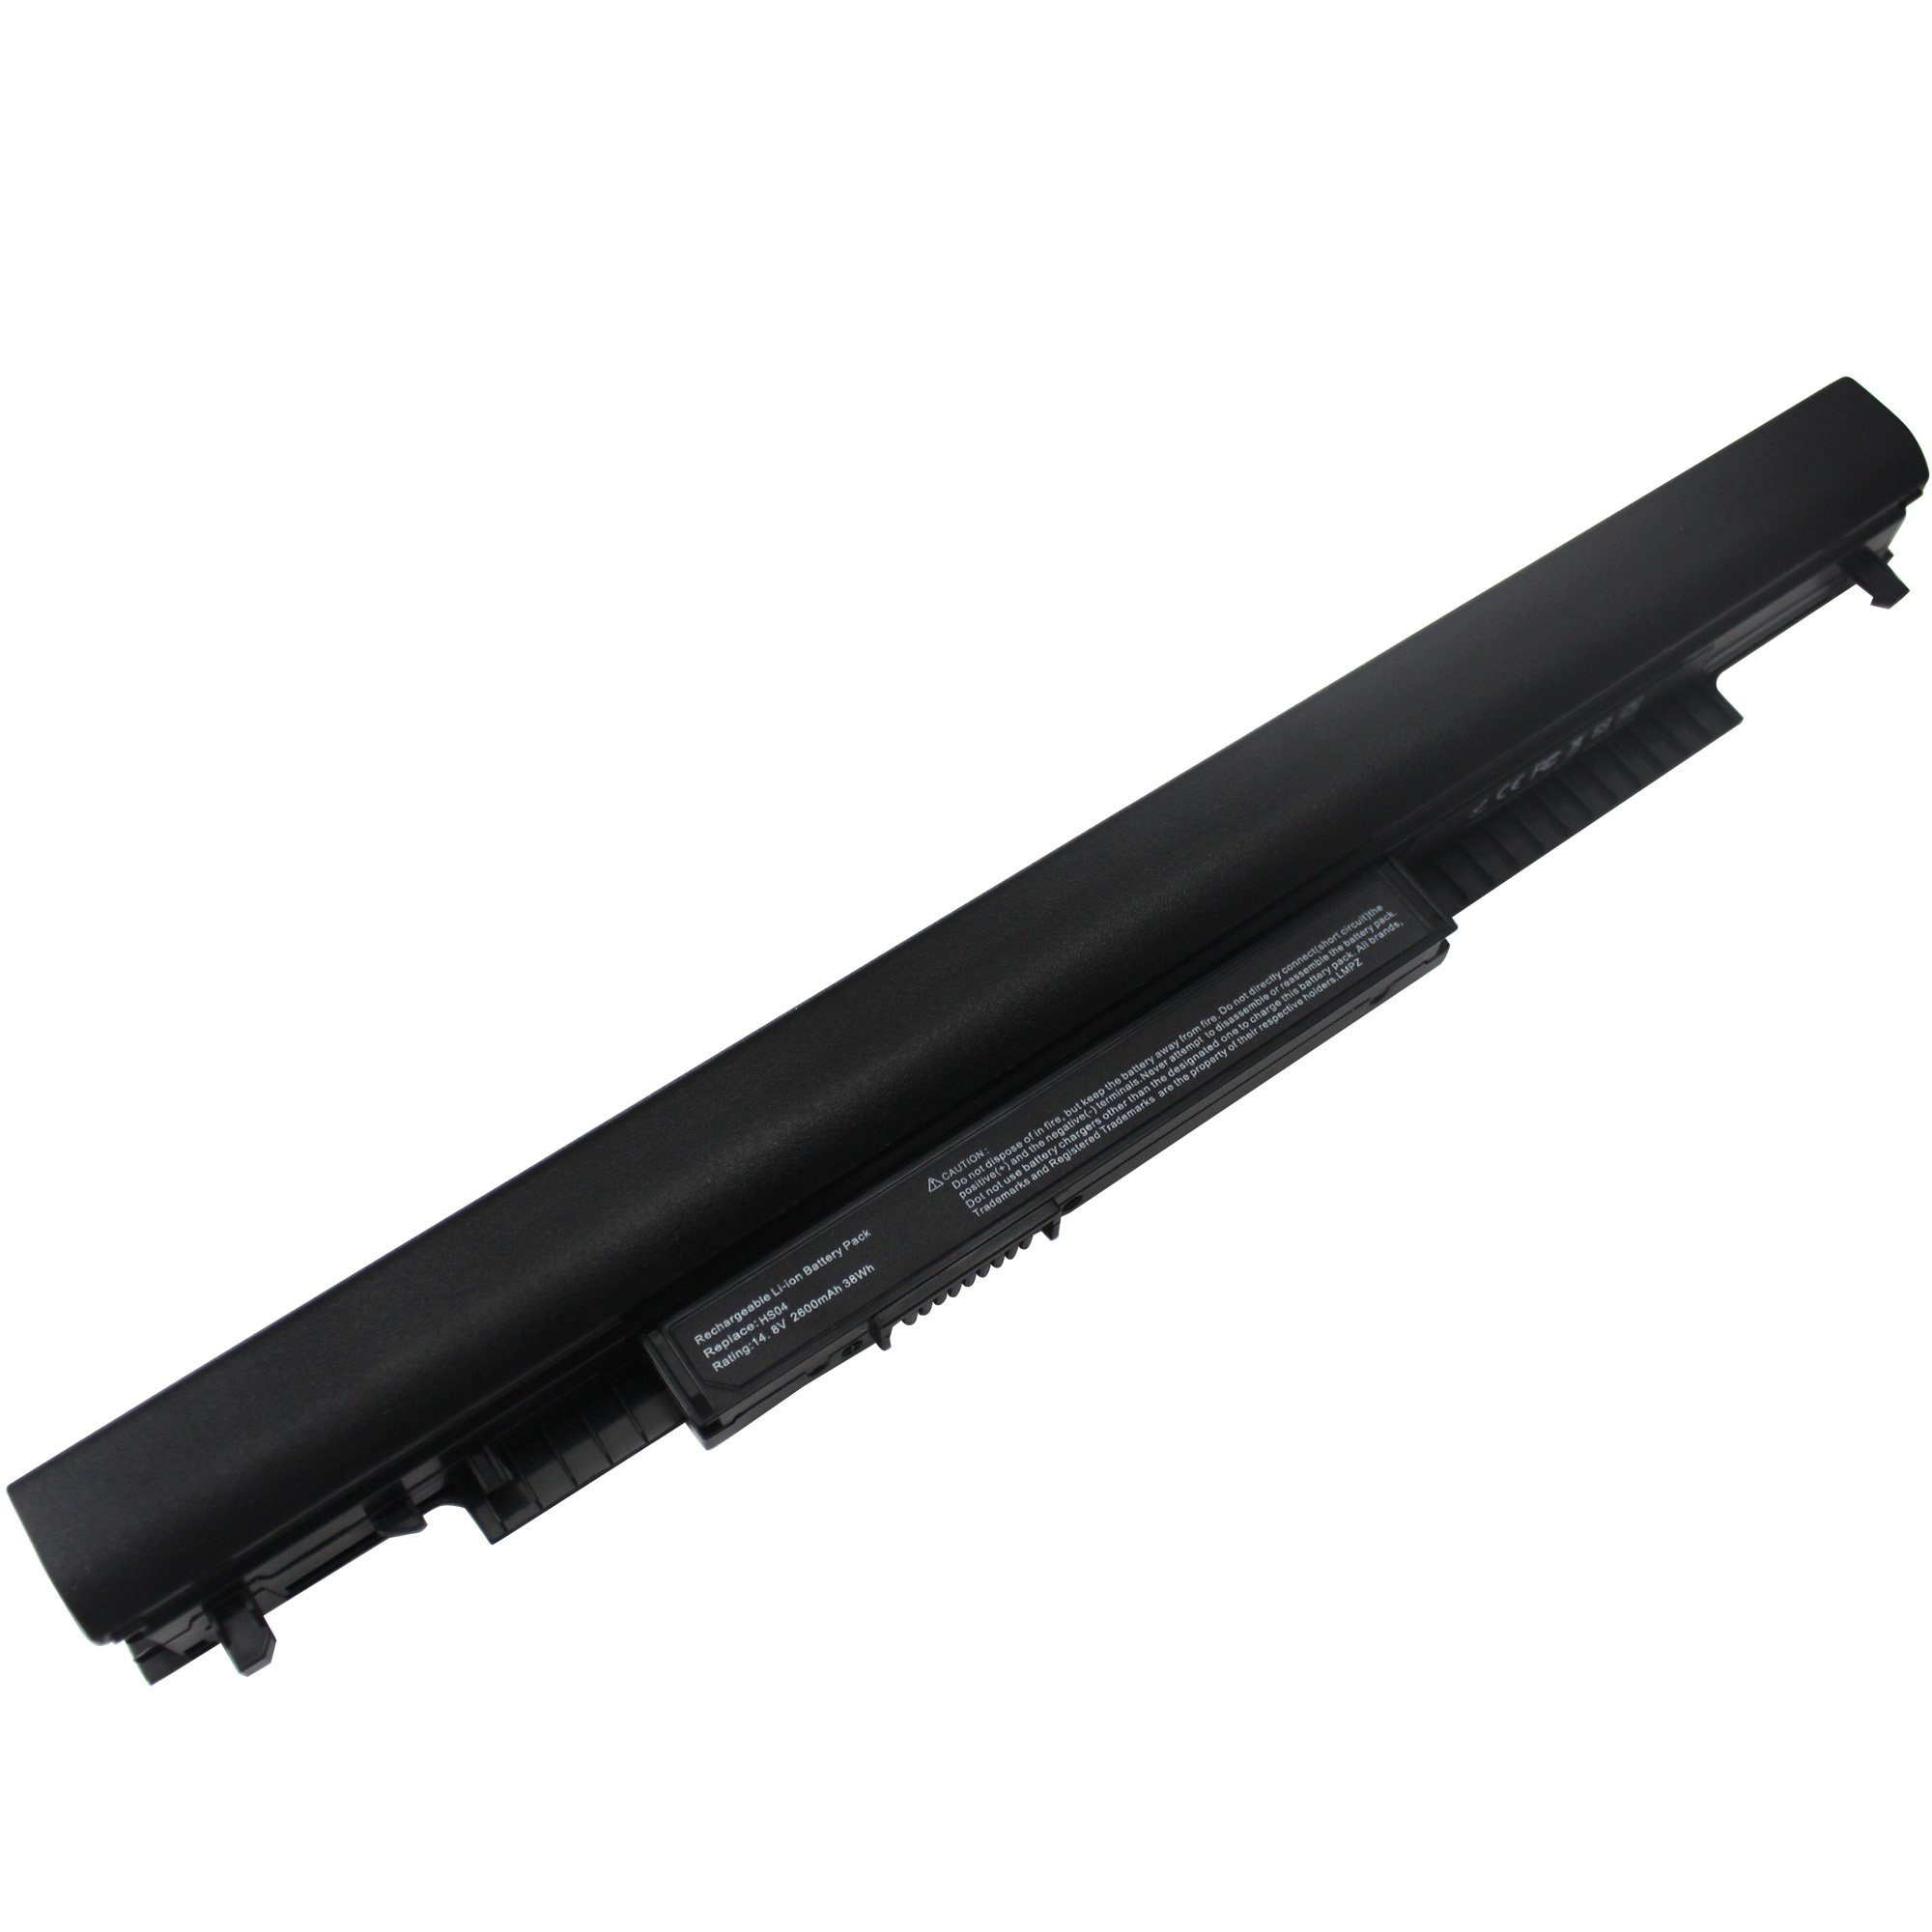 Easy&Fine 4CELL 2600MAH HS04 HS03 Laptop Battery for HP HS04 HS03 807956-001 807957-001 807612-421 HSTNN-LB6U HSTNN-LB6V 807611-421 807611-131 HS04041-CL